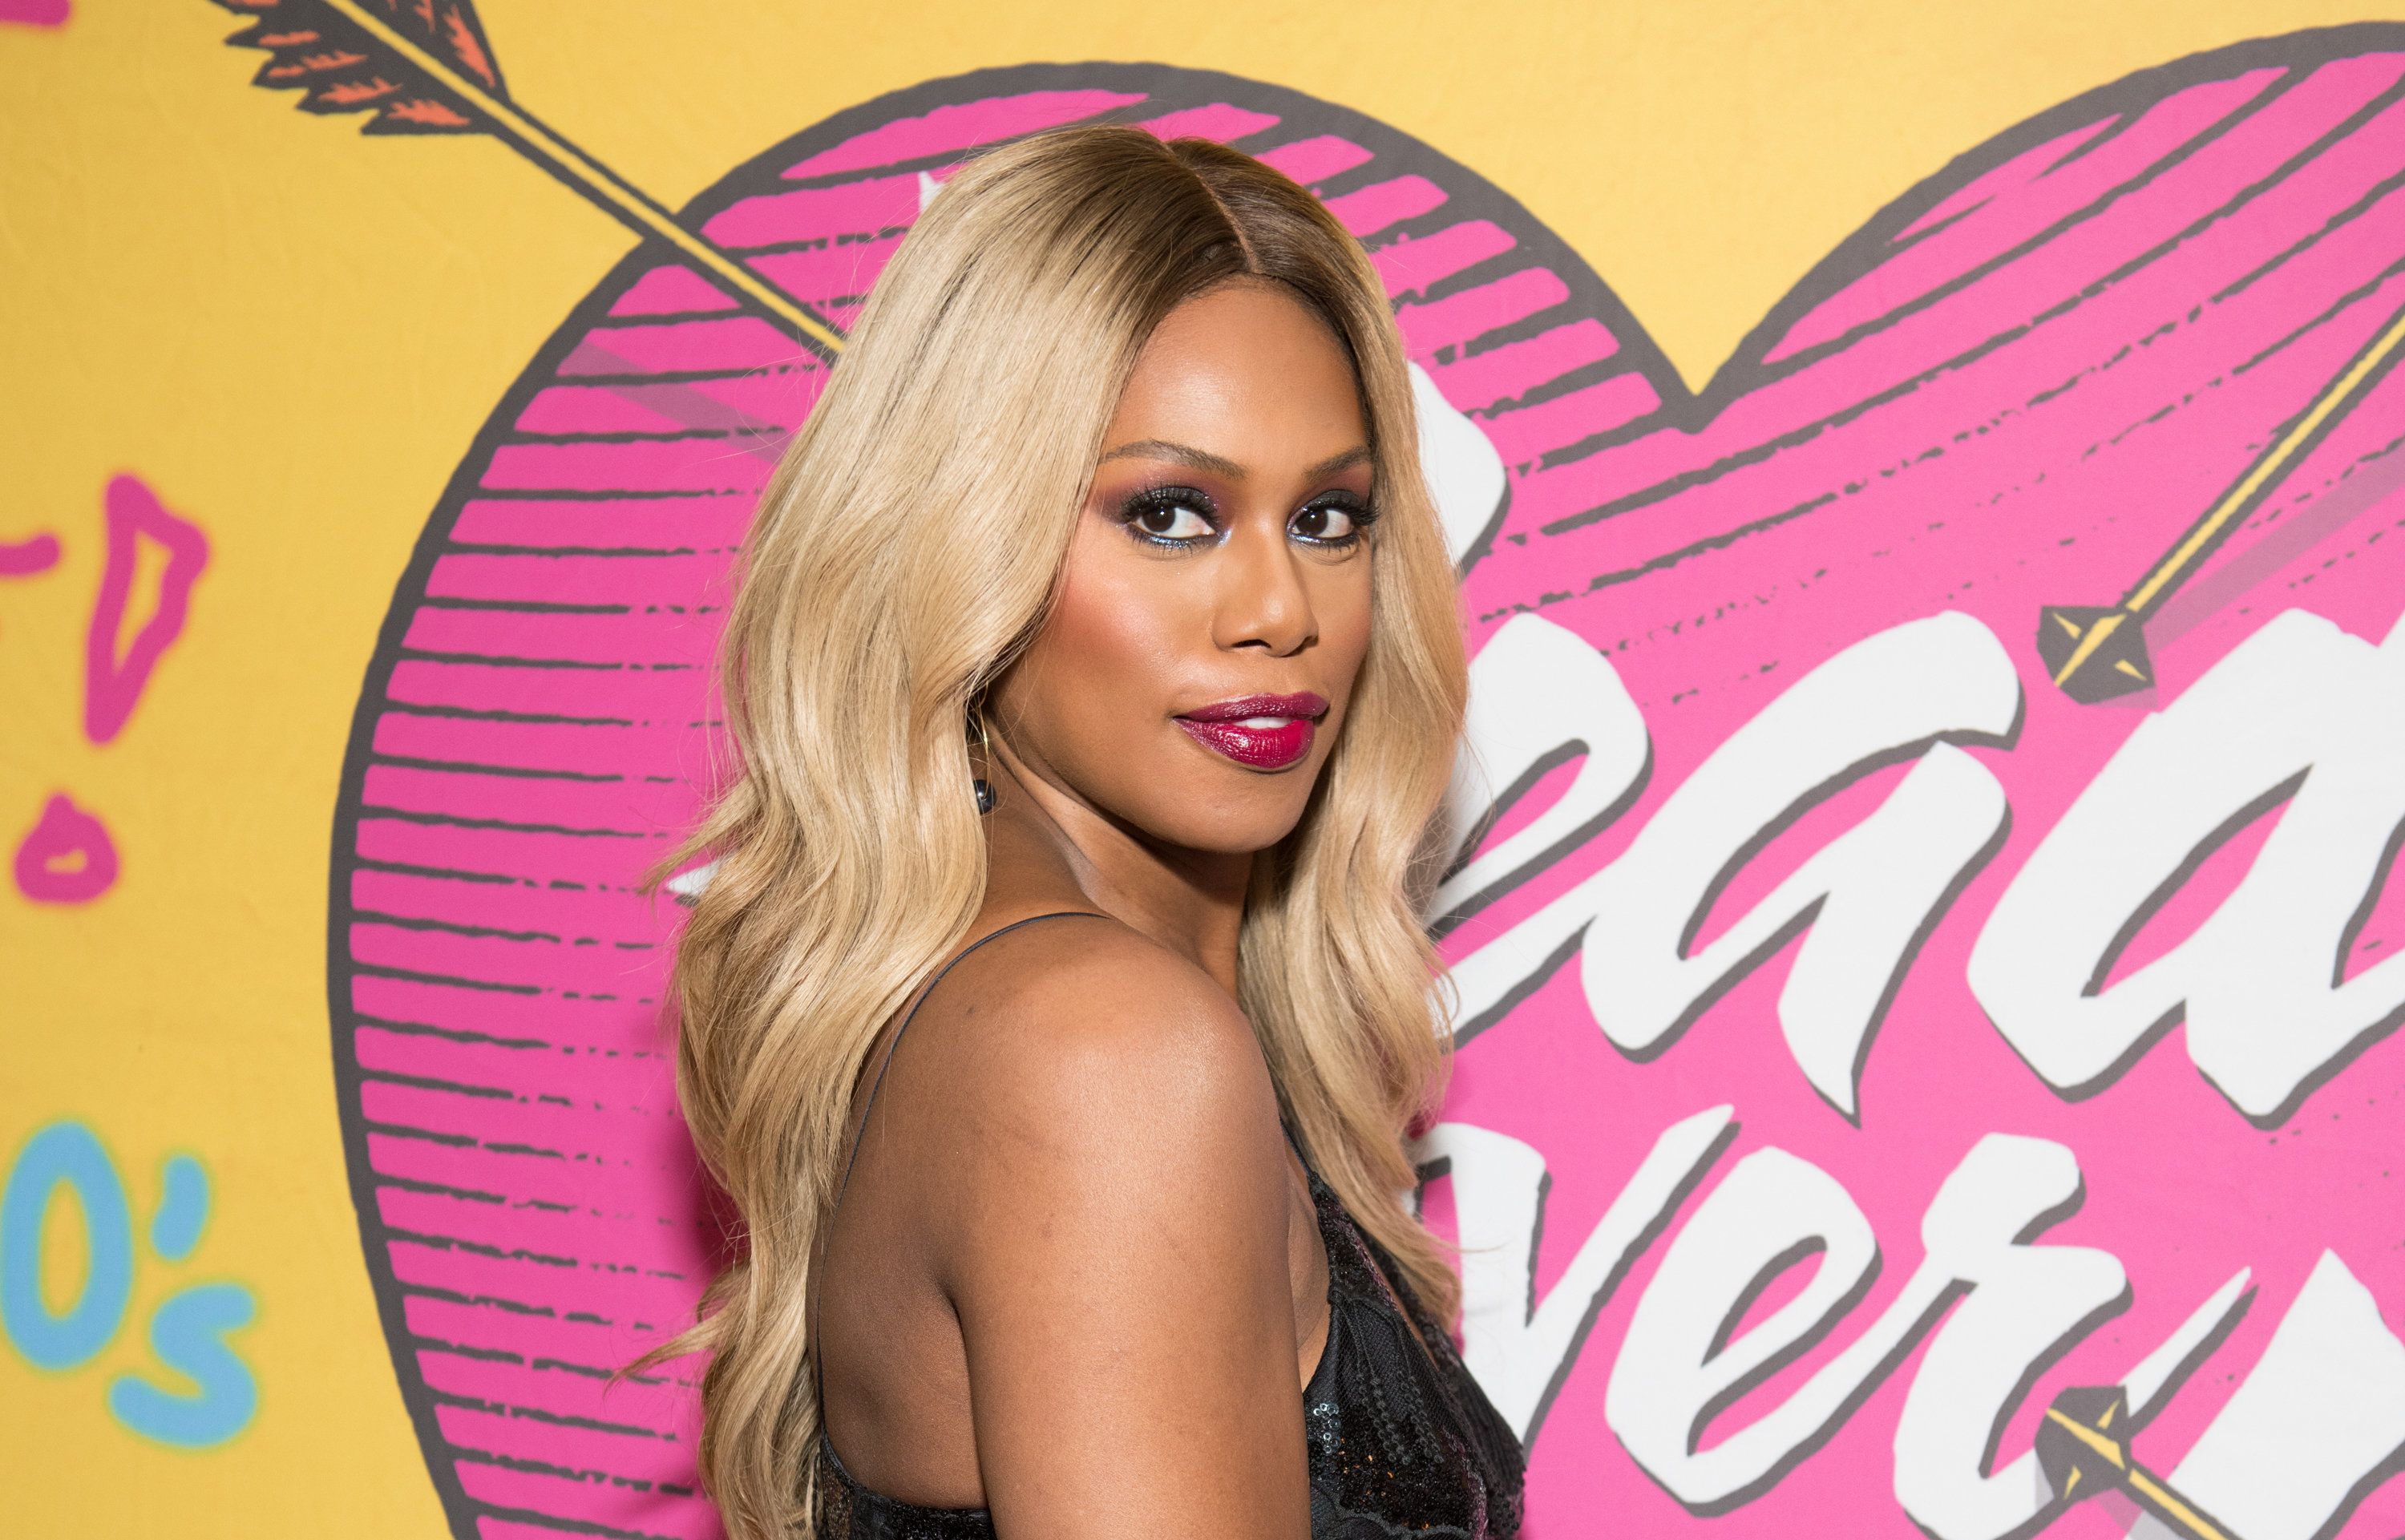 Laverne Cox at the Hudson Theatre last month in New York.